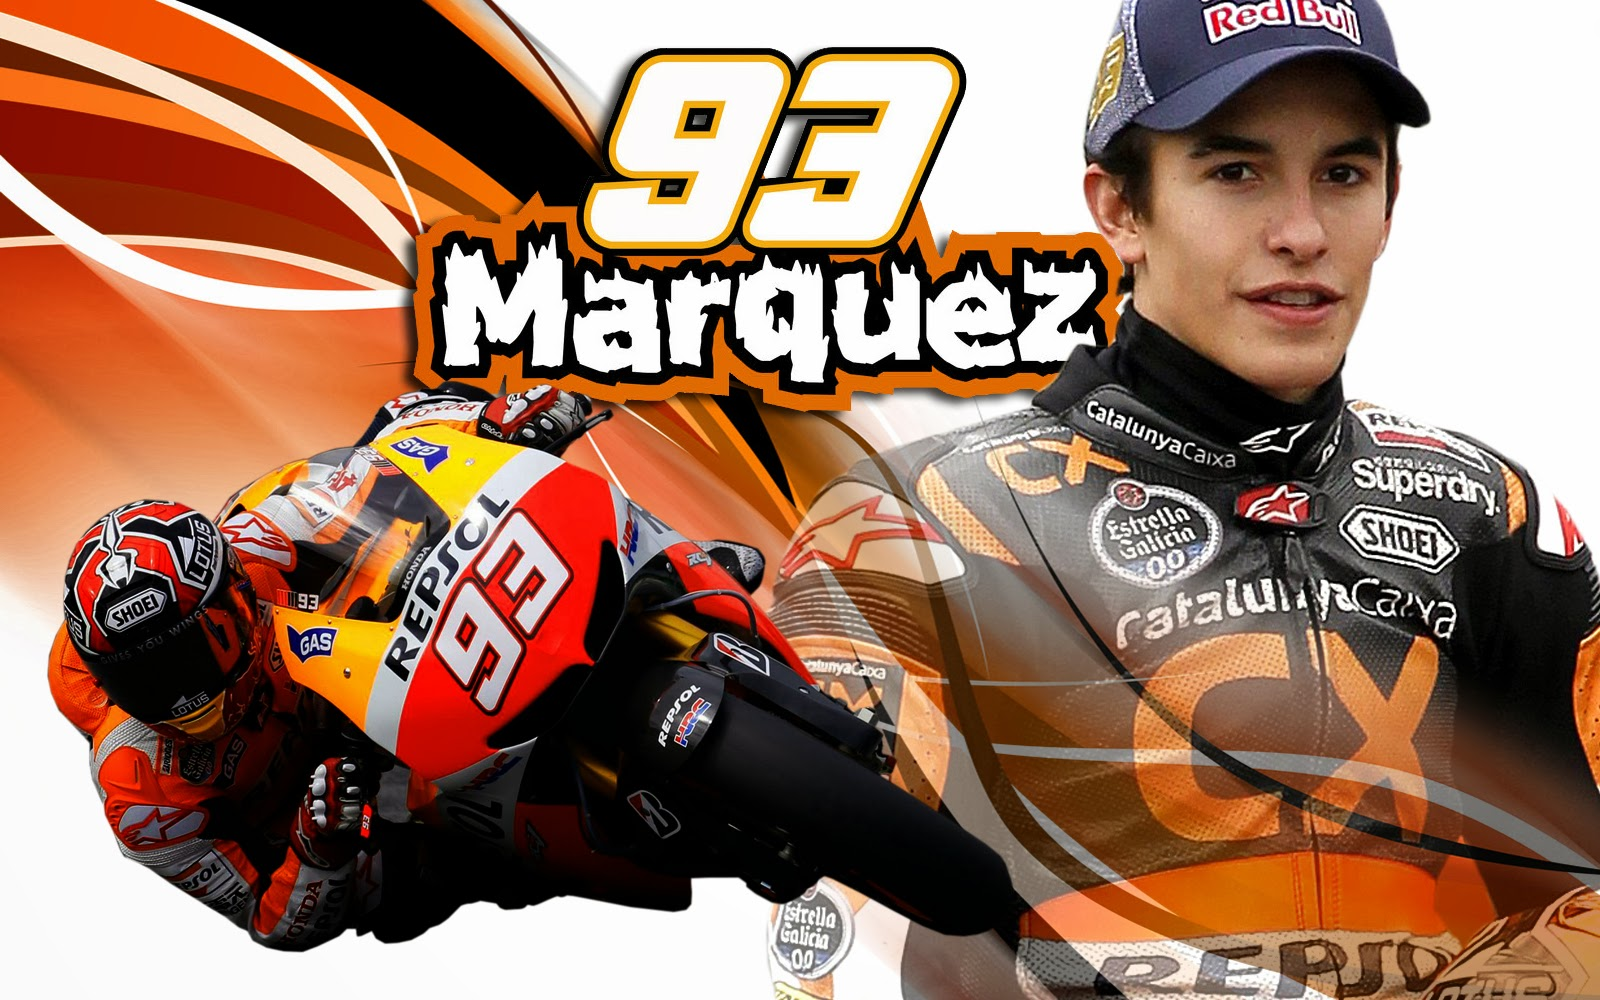 Marc-Marquez-93-Wallpapers-hd-Honda-Repsol-06